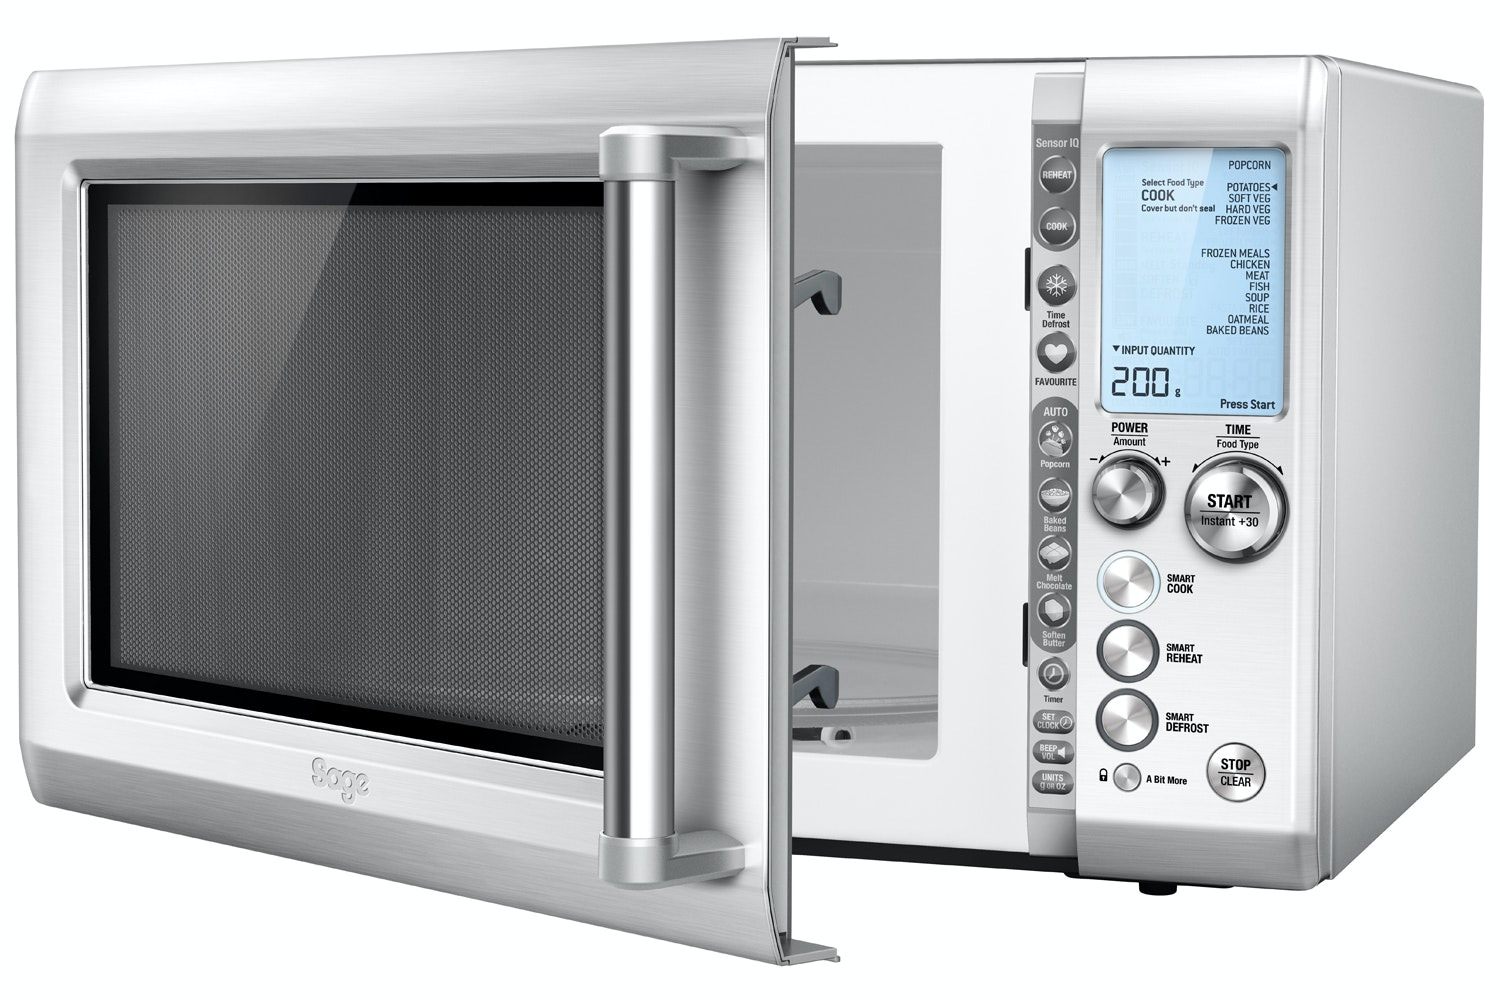 Sage QuickTouch Microwave | BMO734UK